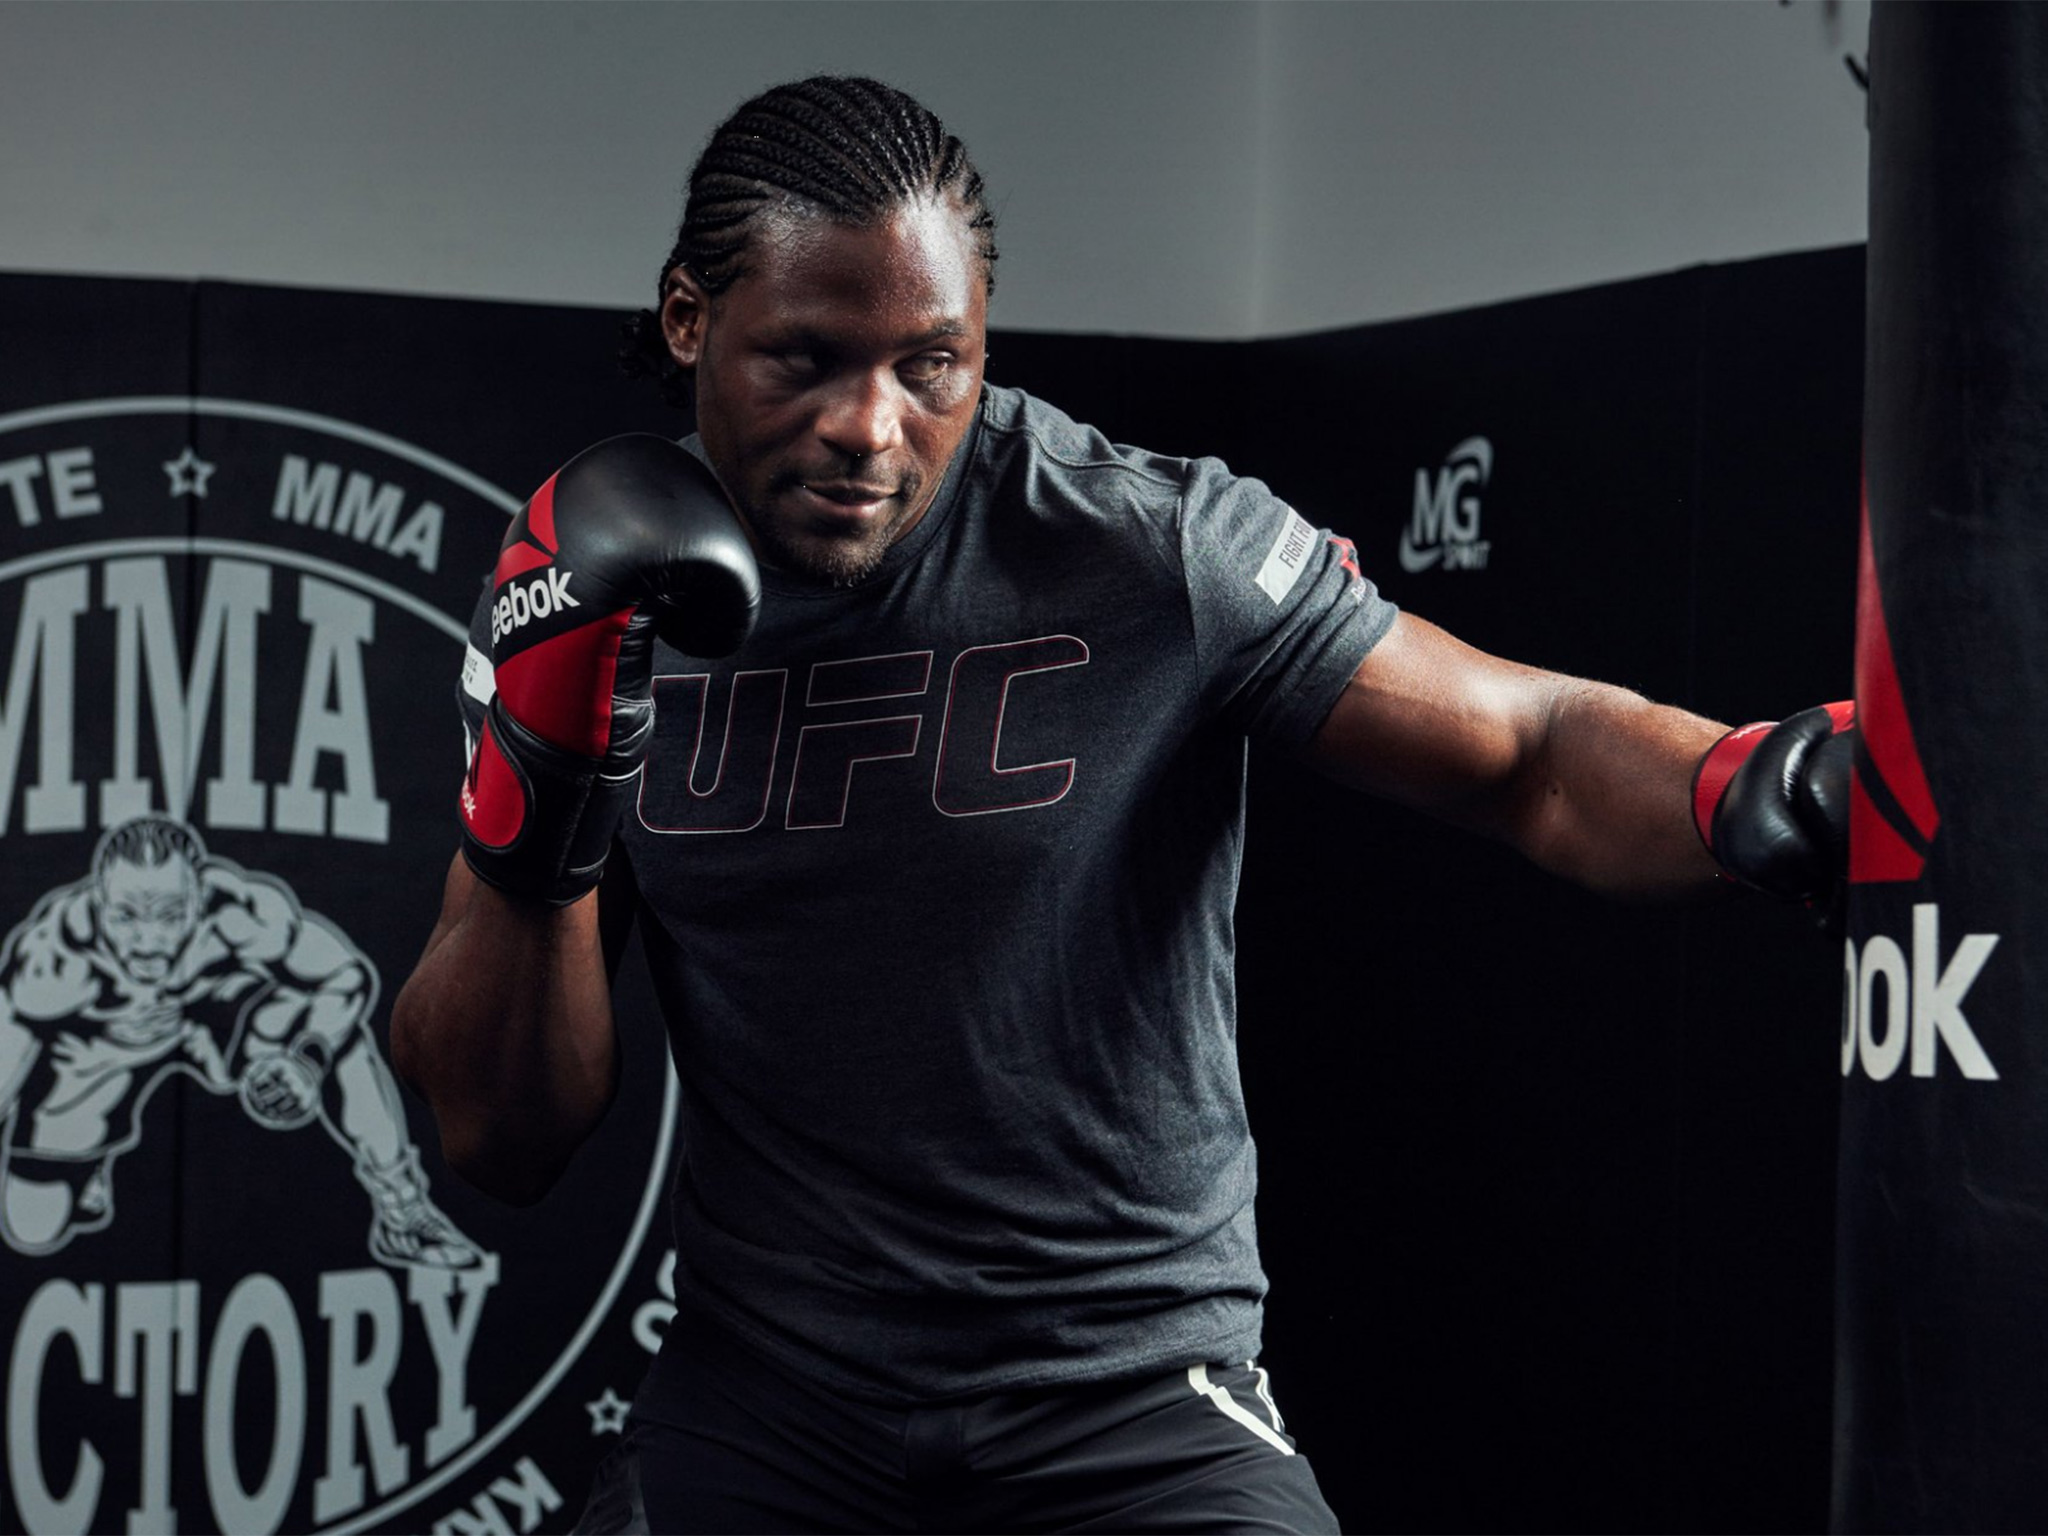 Francis Ngannou holds open workout and media scrum ahead of UFC 209